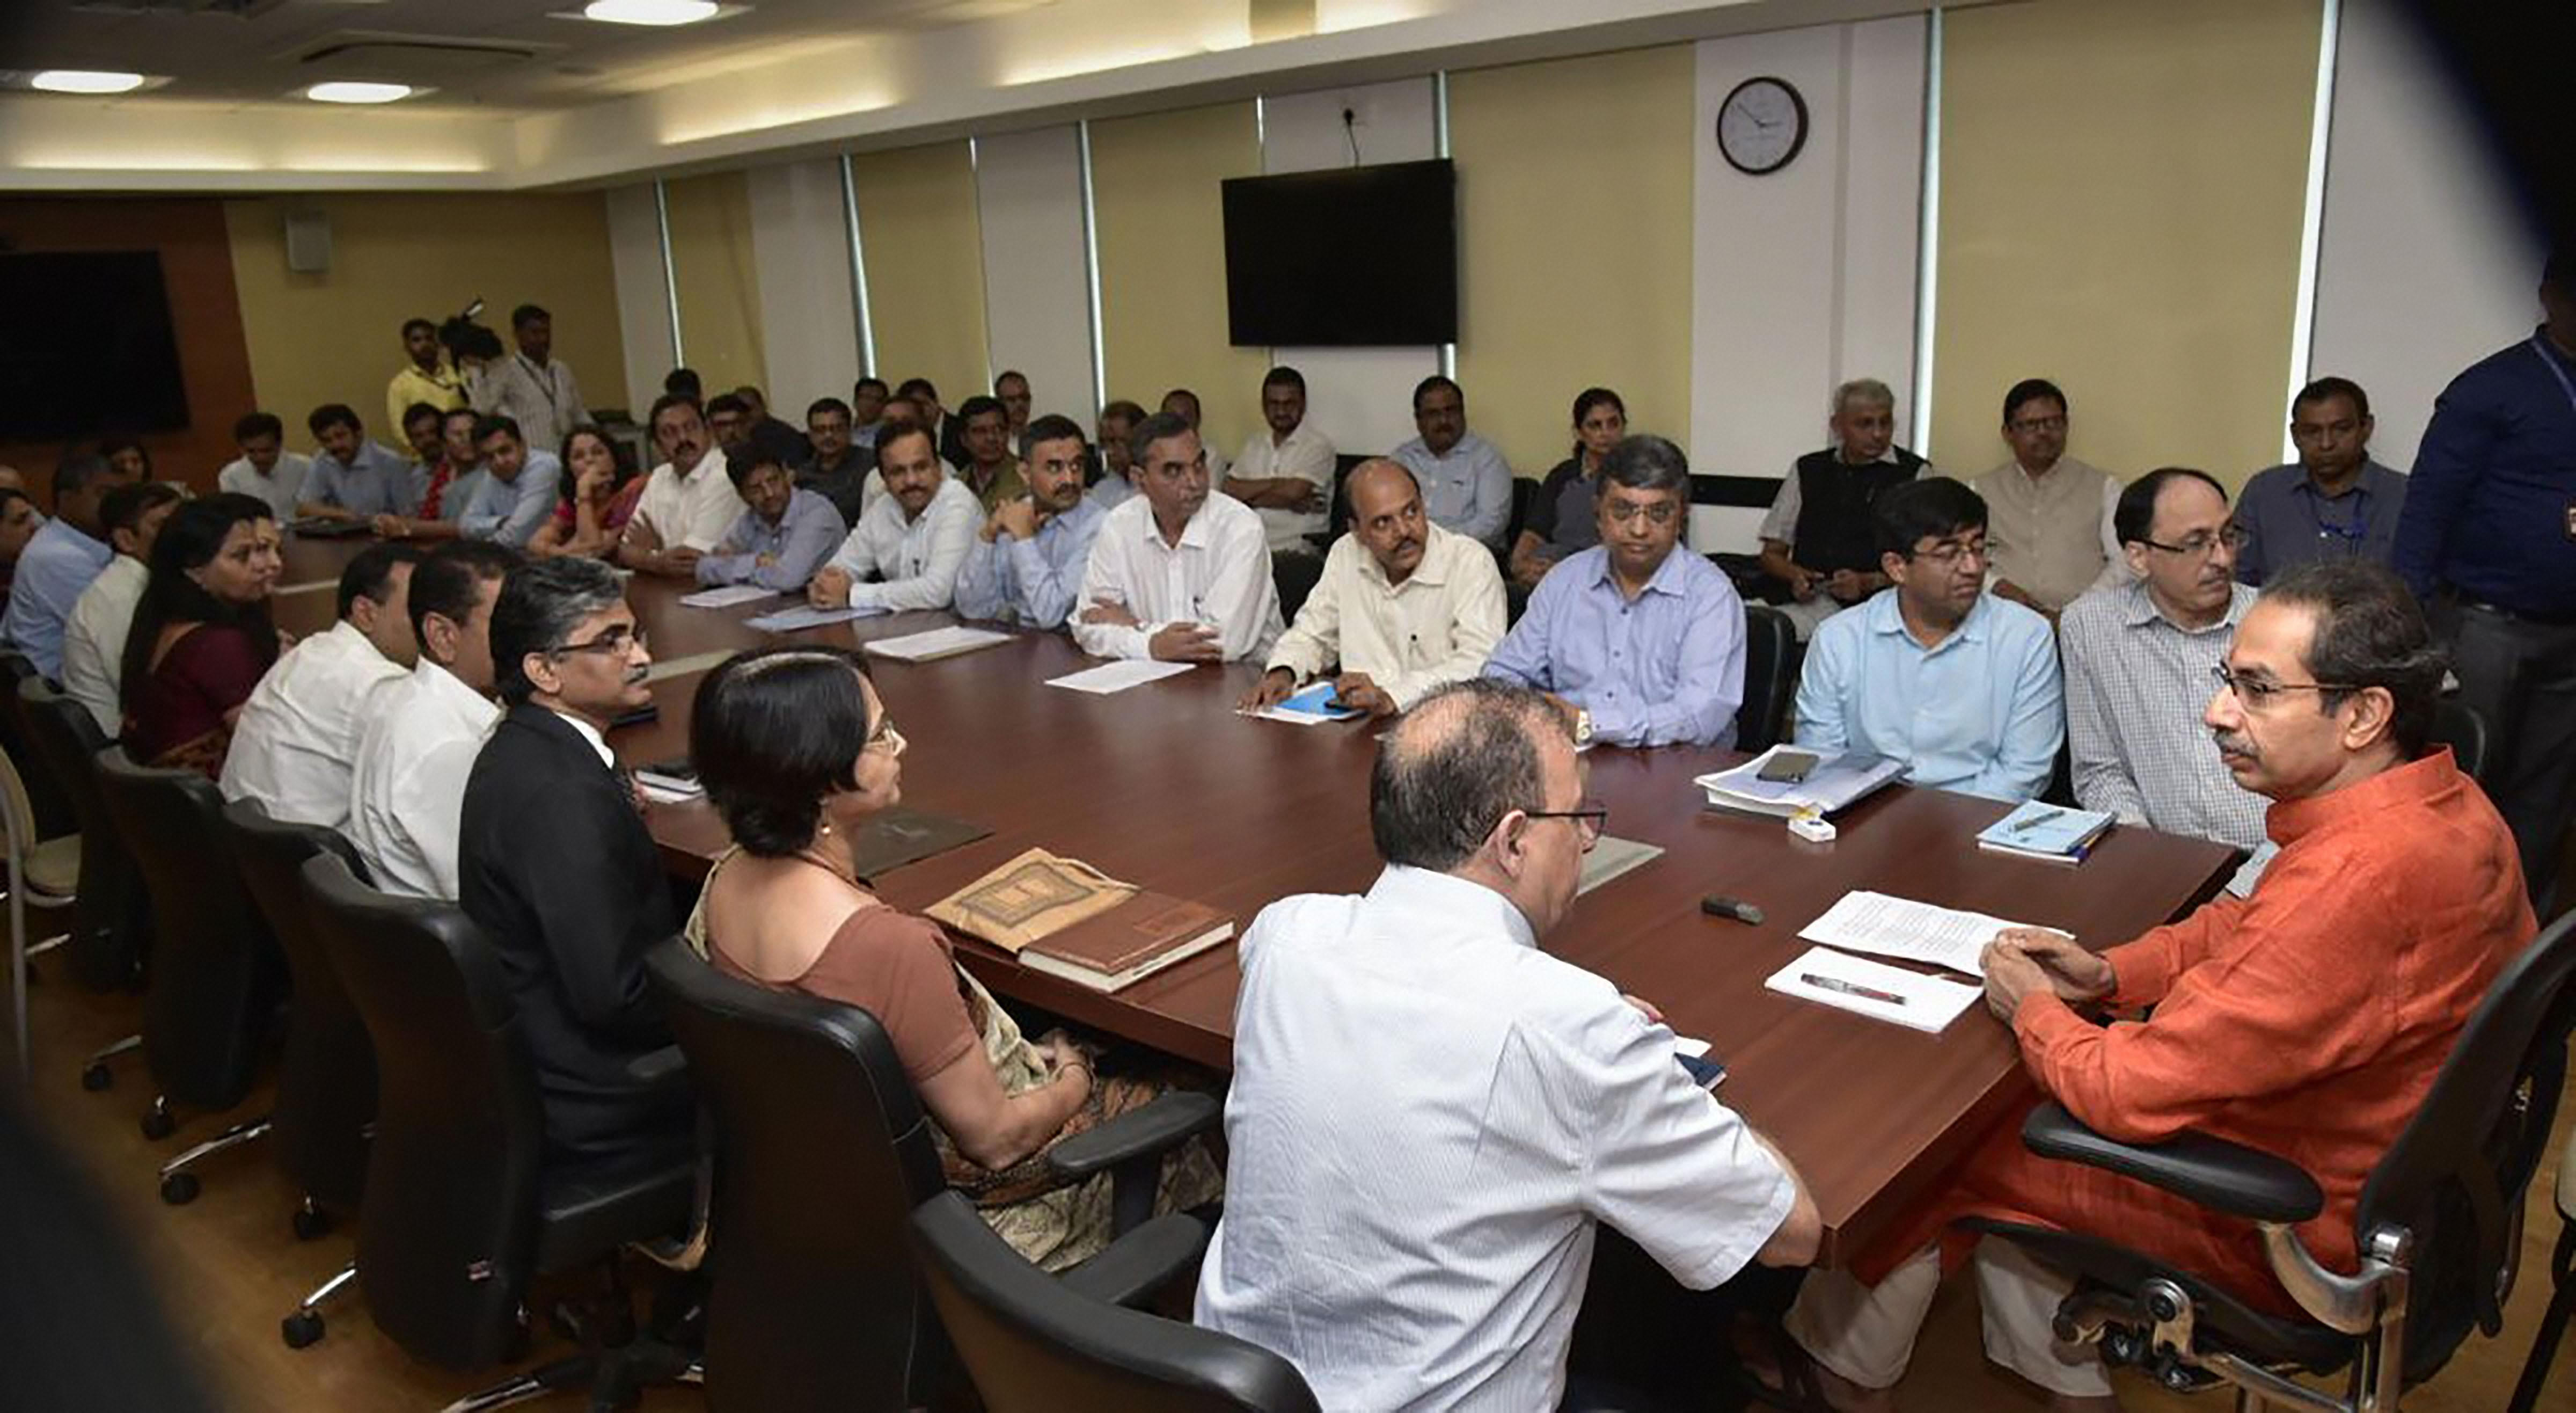 Maharashtra chief minister Uddhav Thackeray in a meeting with senior officers at Mantralaya after formally taking charge of his office, in Mumbai, Friday, November 29, 2019.